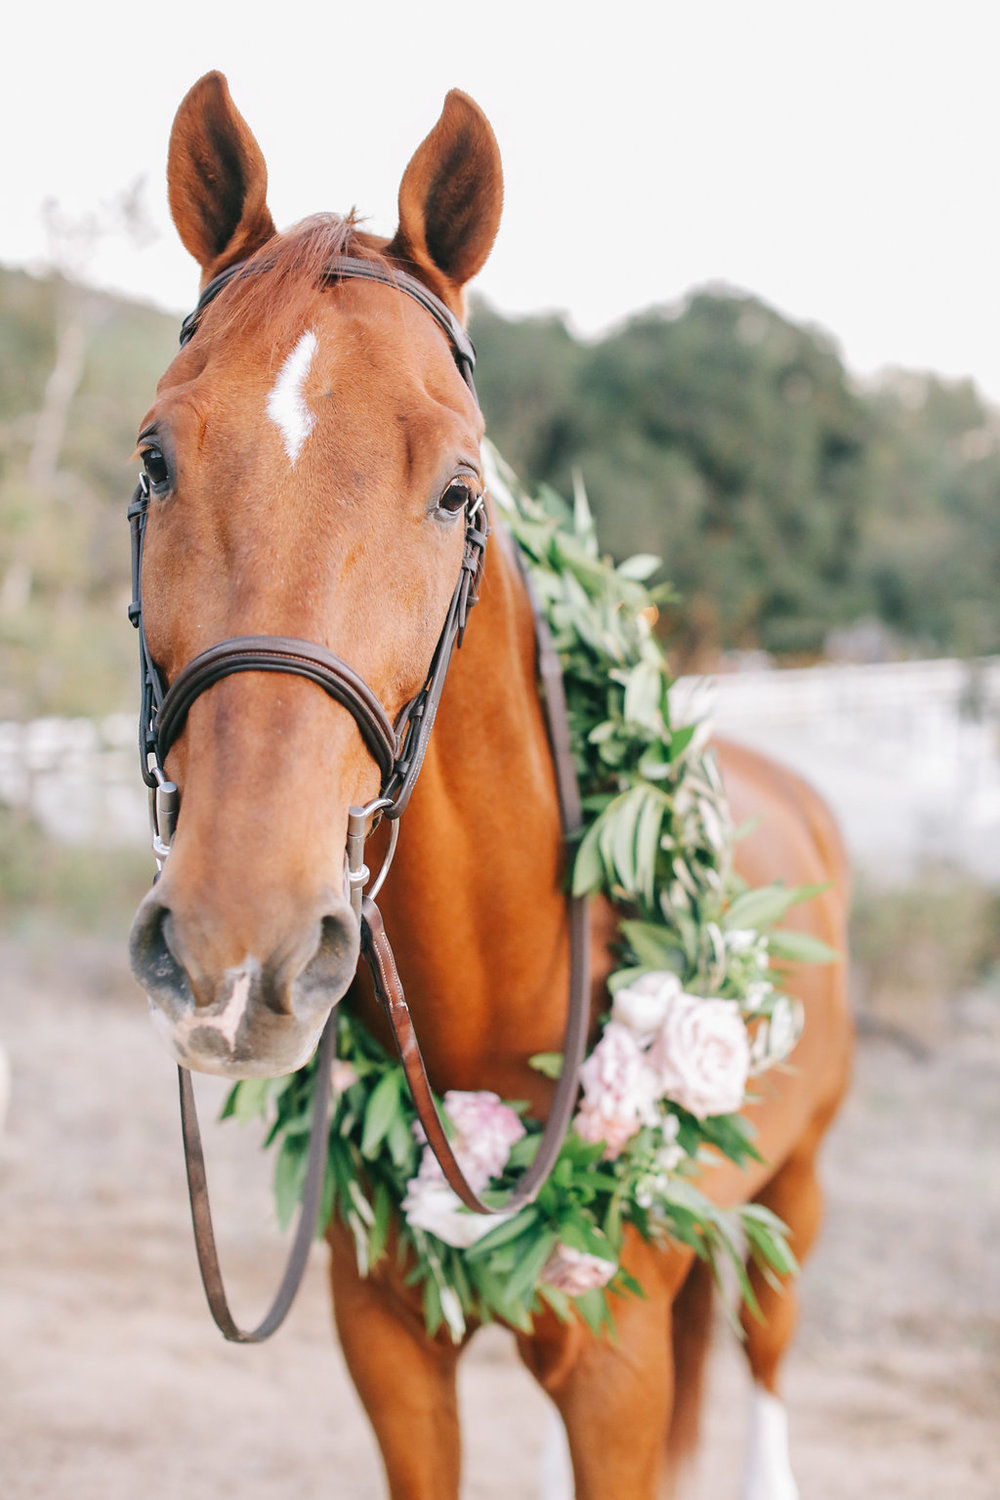 LVL Weddings and Events Brandon Kidd Equestrian Wedding (85).jpg